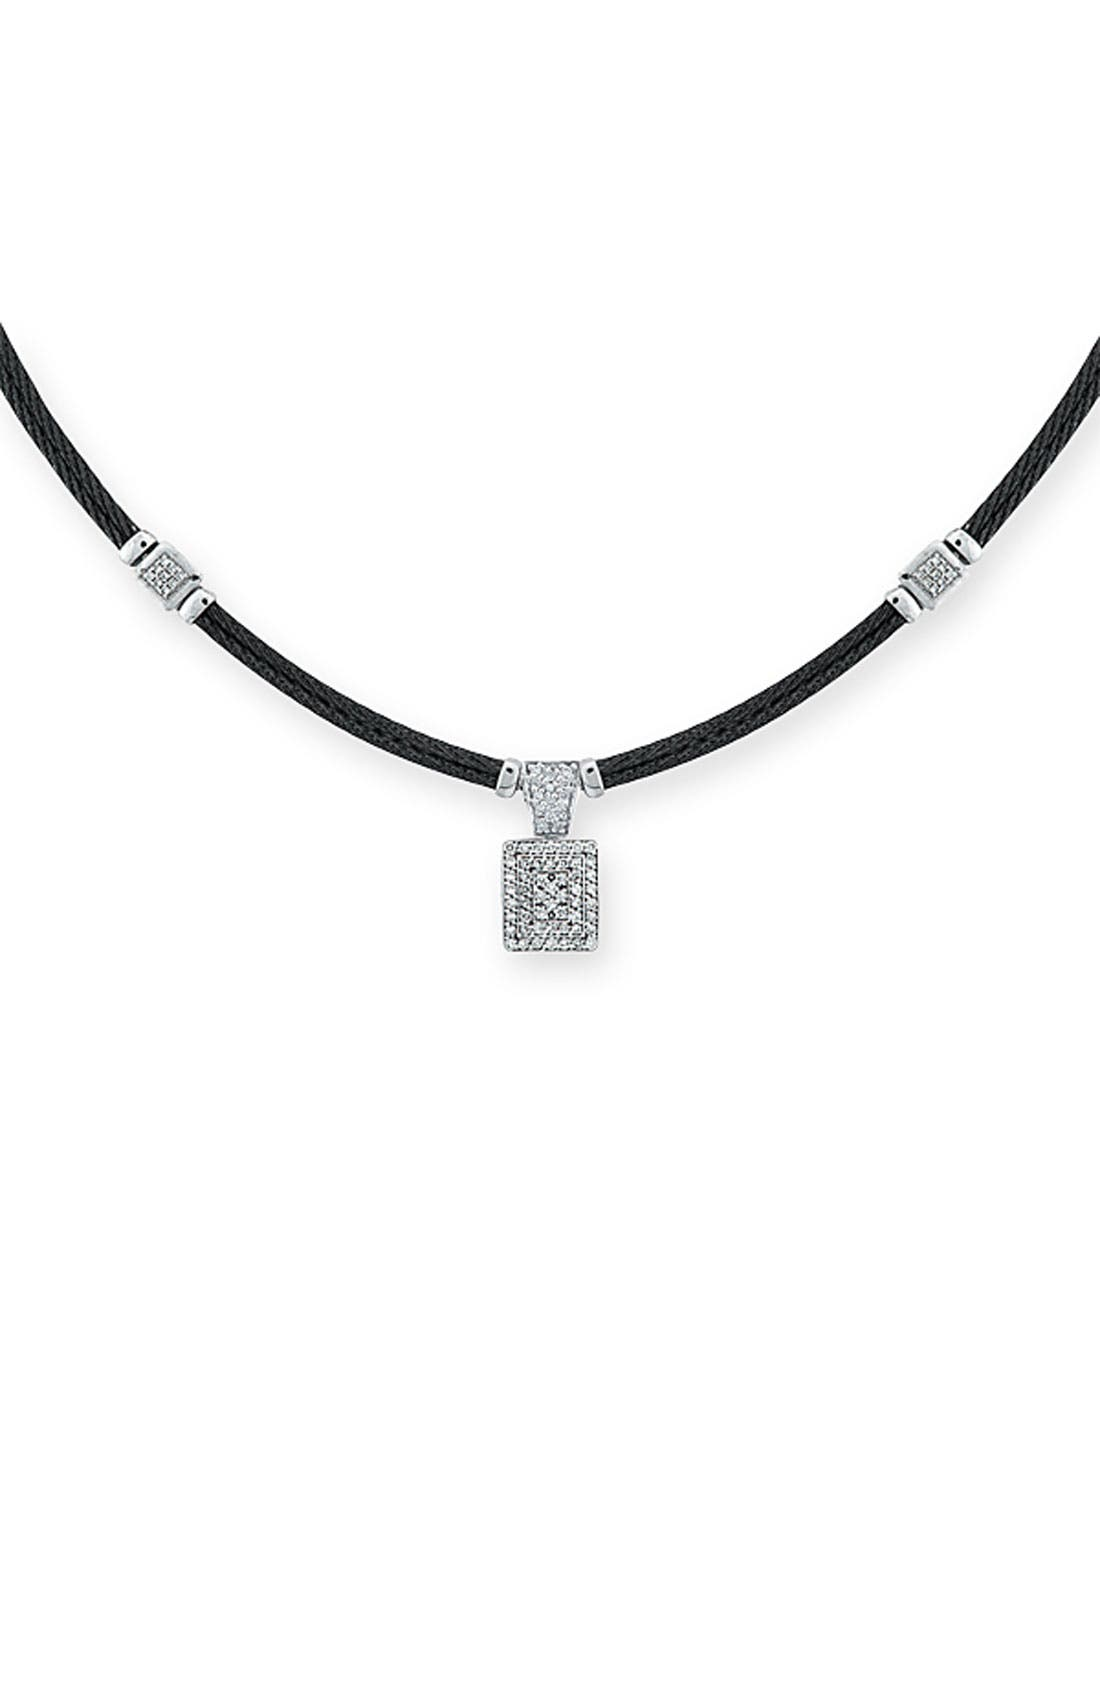 Main Image - ALOR® Two Row Diamond Necklace